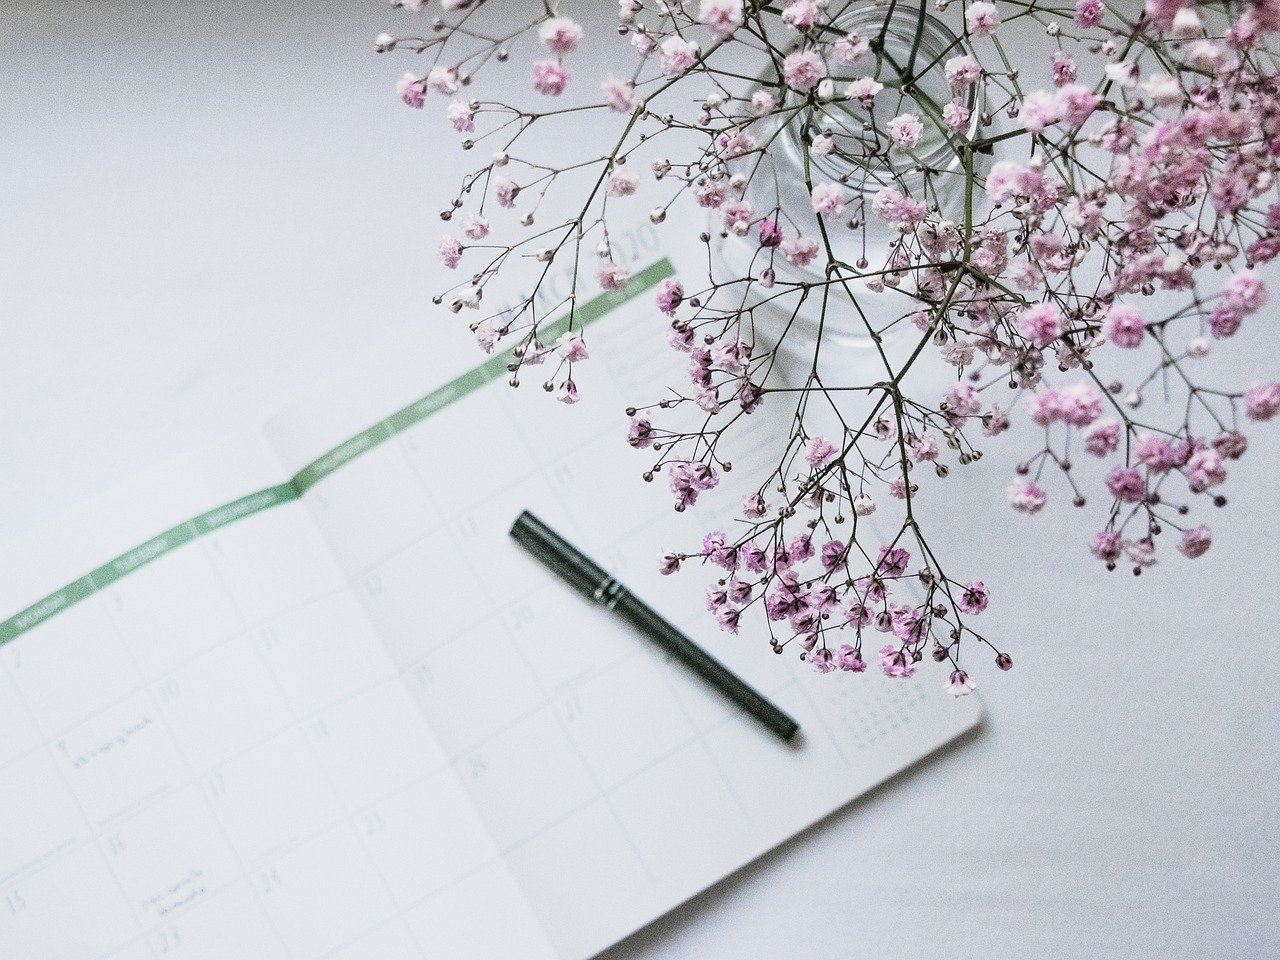 Six Things to Do in March to Prepare for MBA Applications